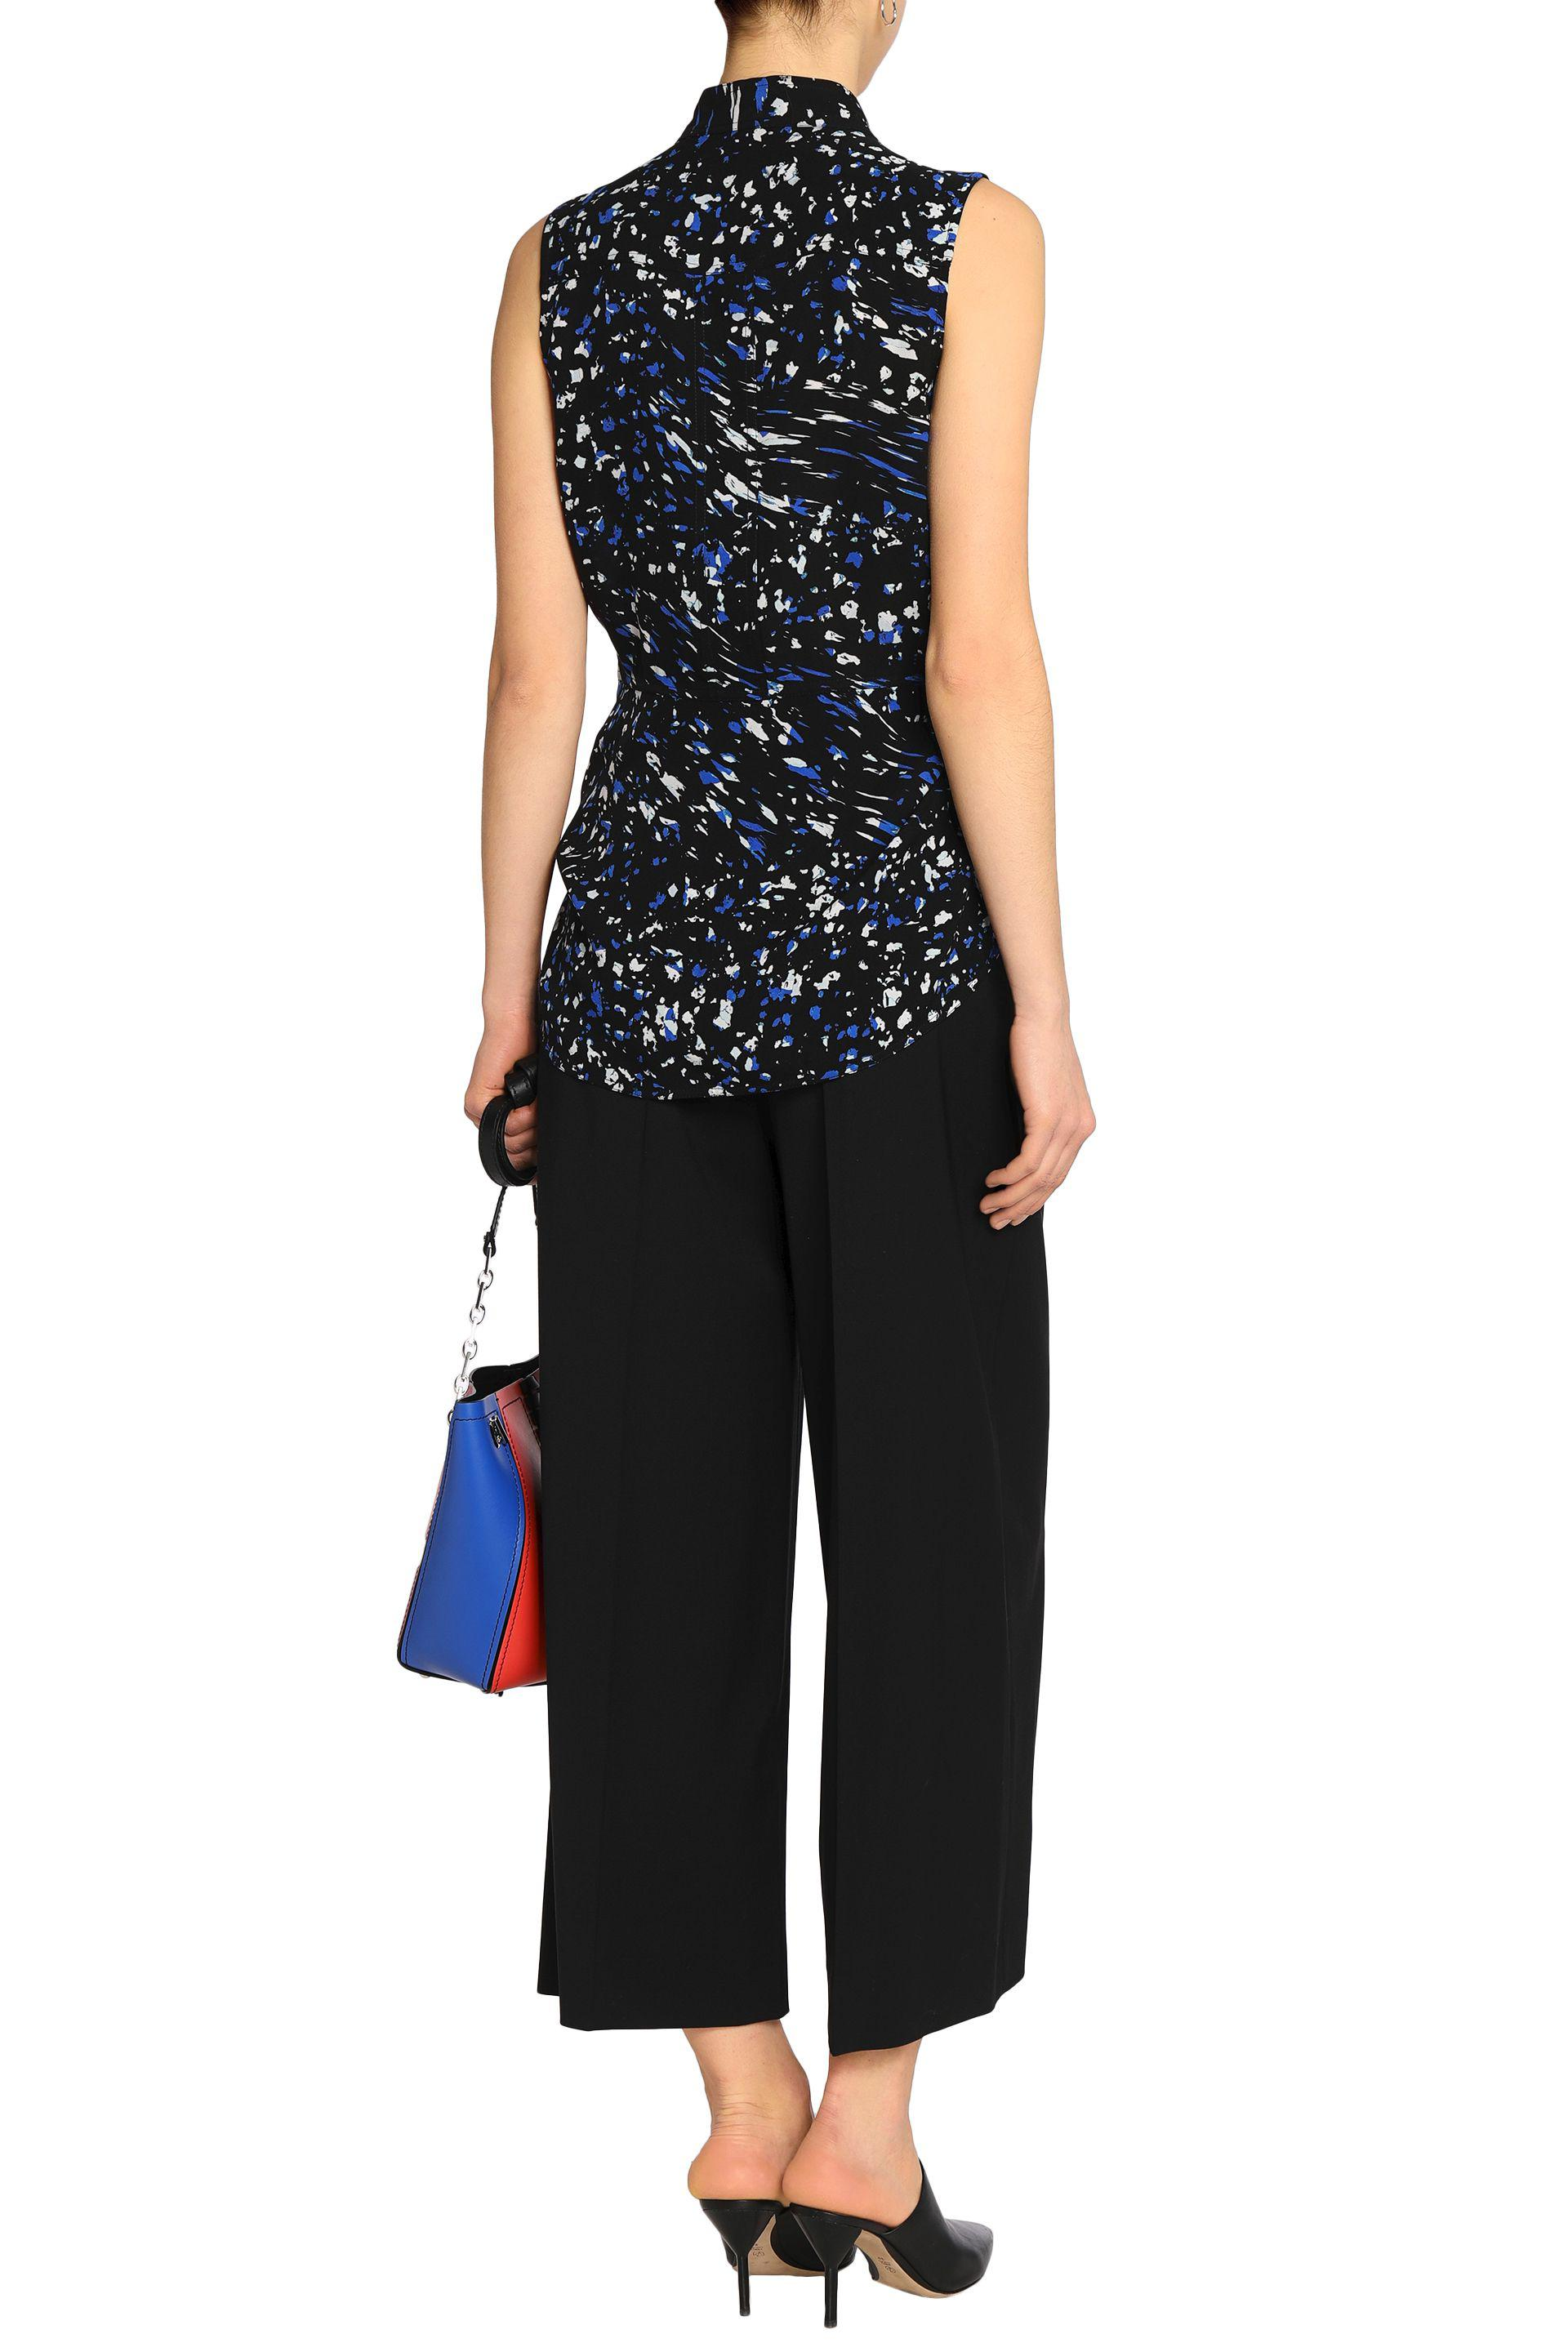 Cheap Usa Stockist Proenza Schouler Woman Pussy-bow Printed Silk Wrap Top Black Size 2 Proenza Schouler For Sale Very Cheap 2018 New For Sale Limit Discount OPL3C